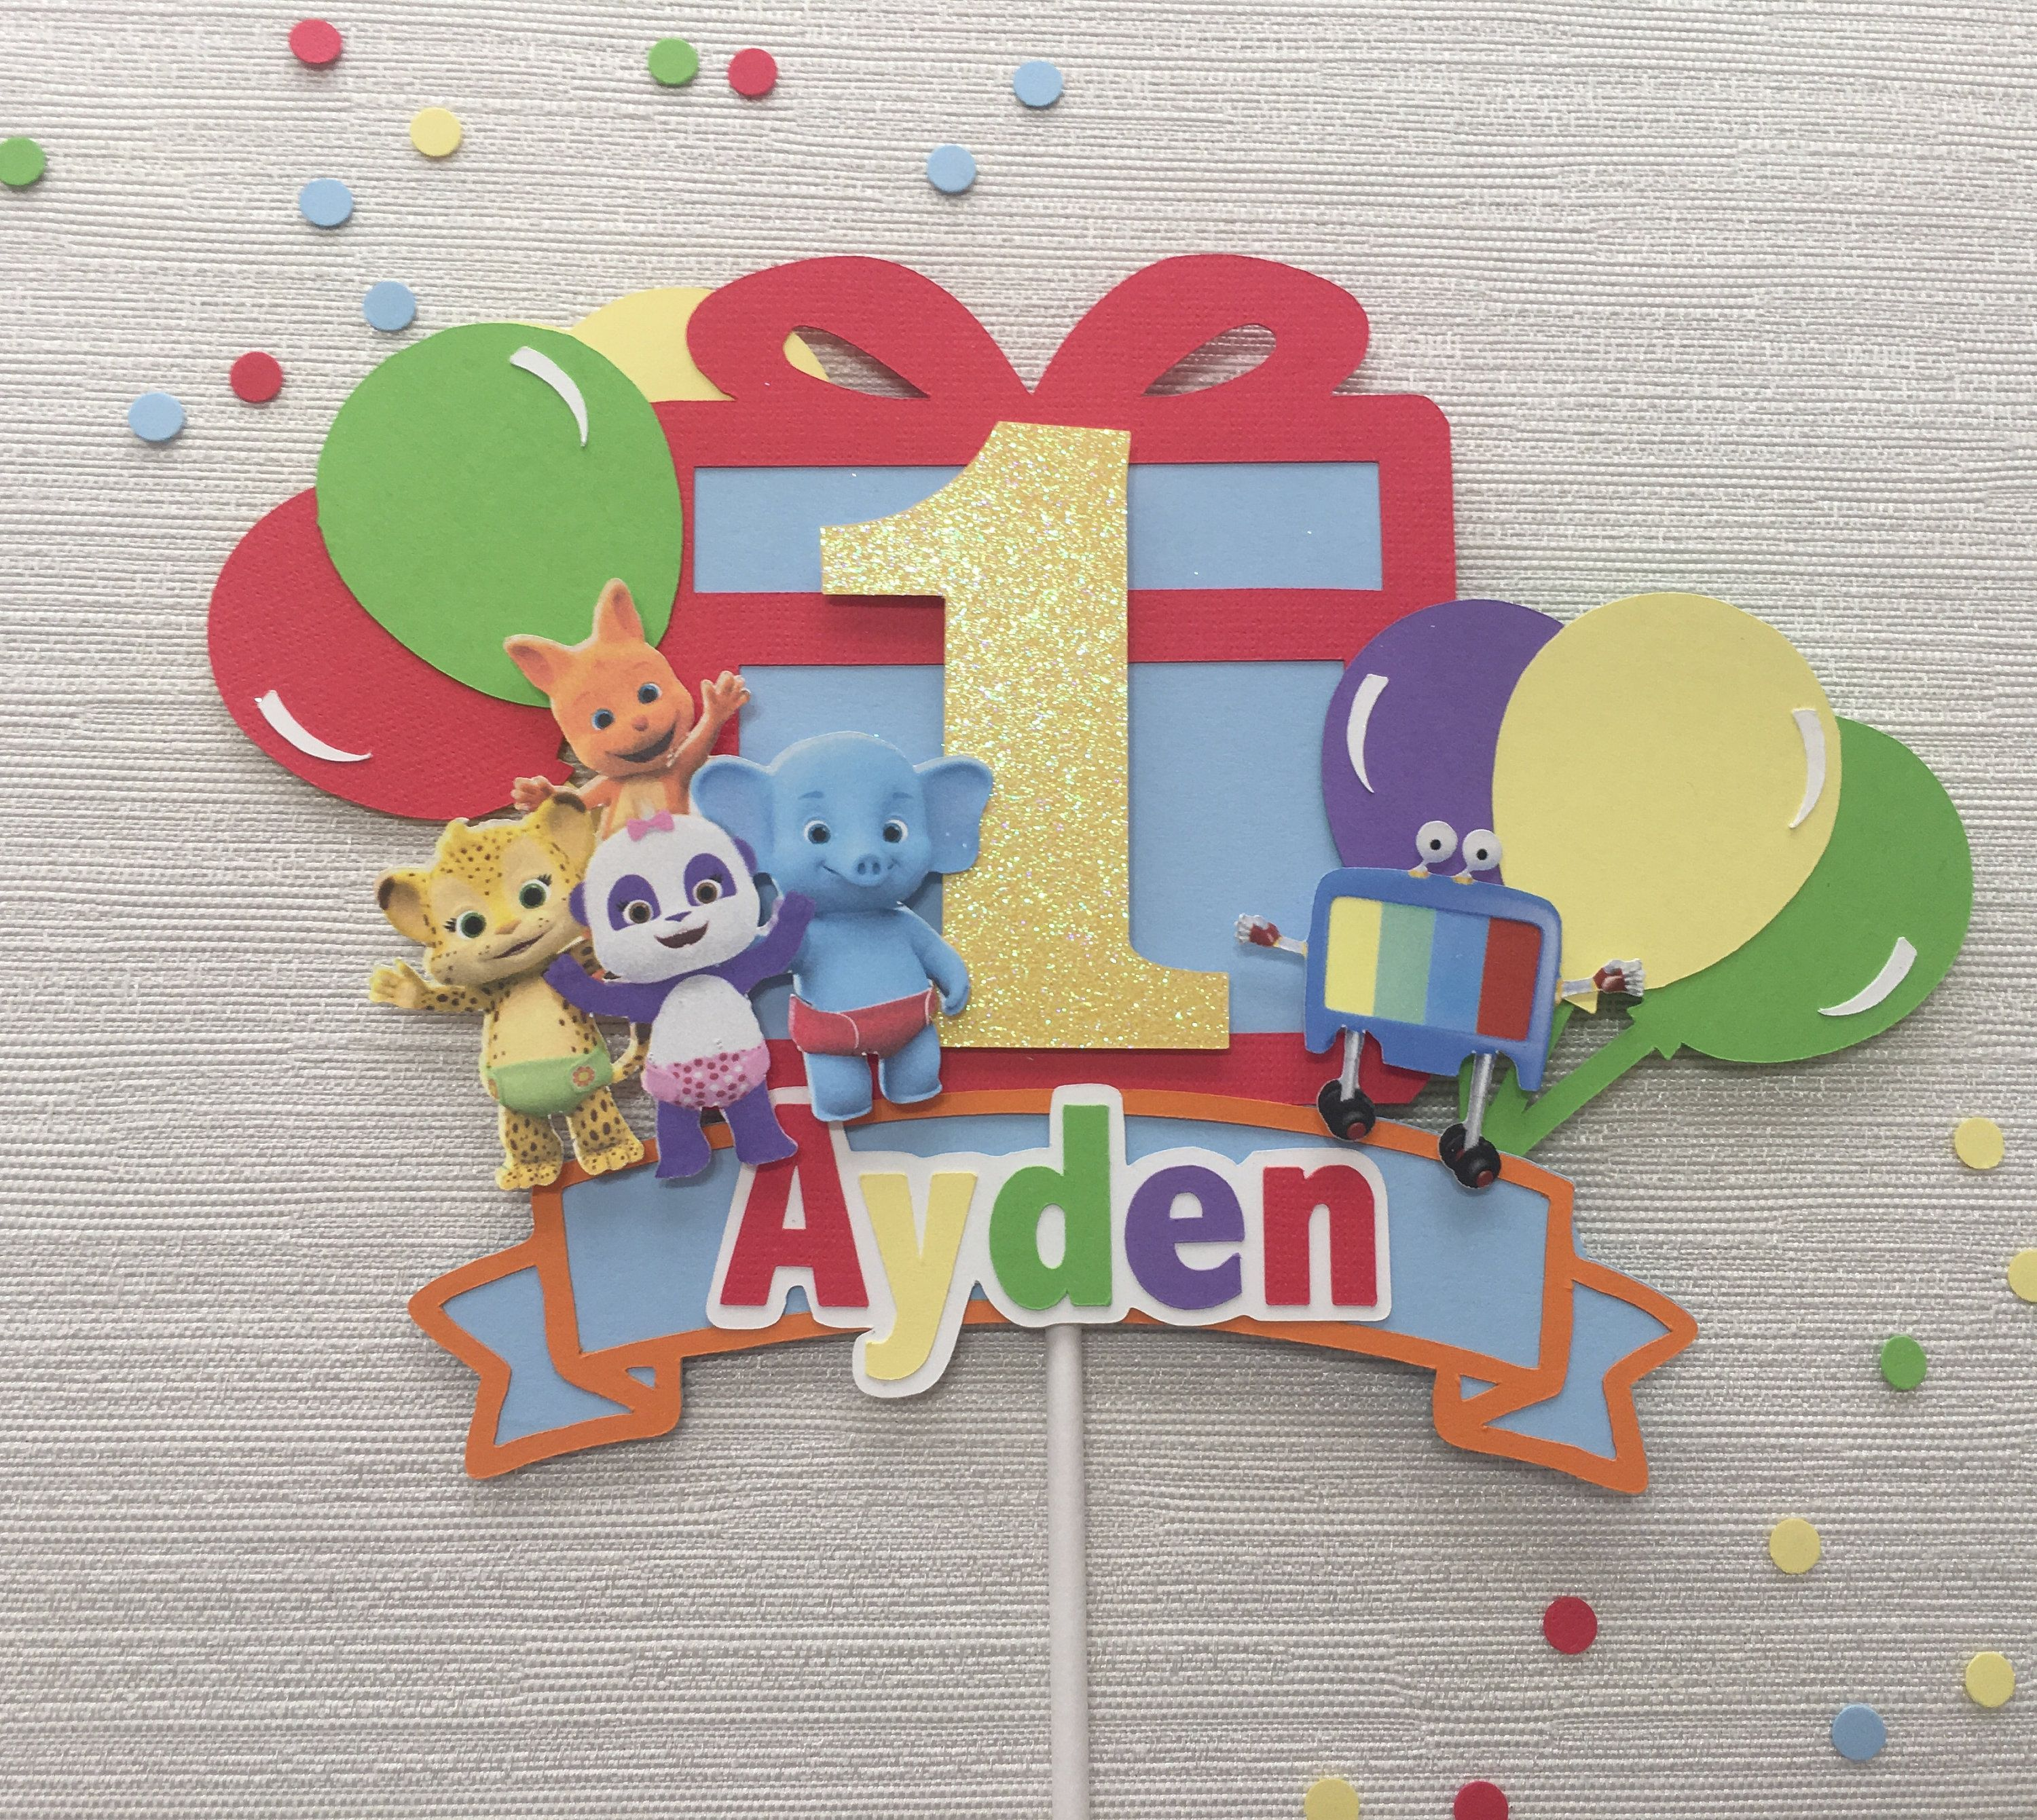 Word Party Inspired Cake Topper   Etsy in 2020   Party ...